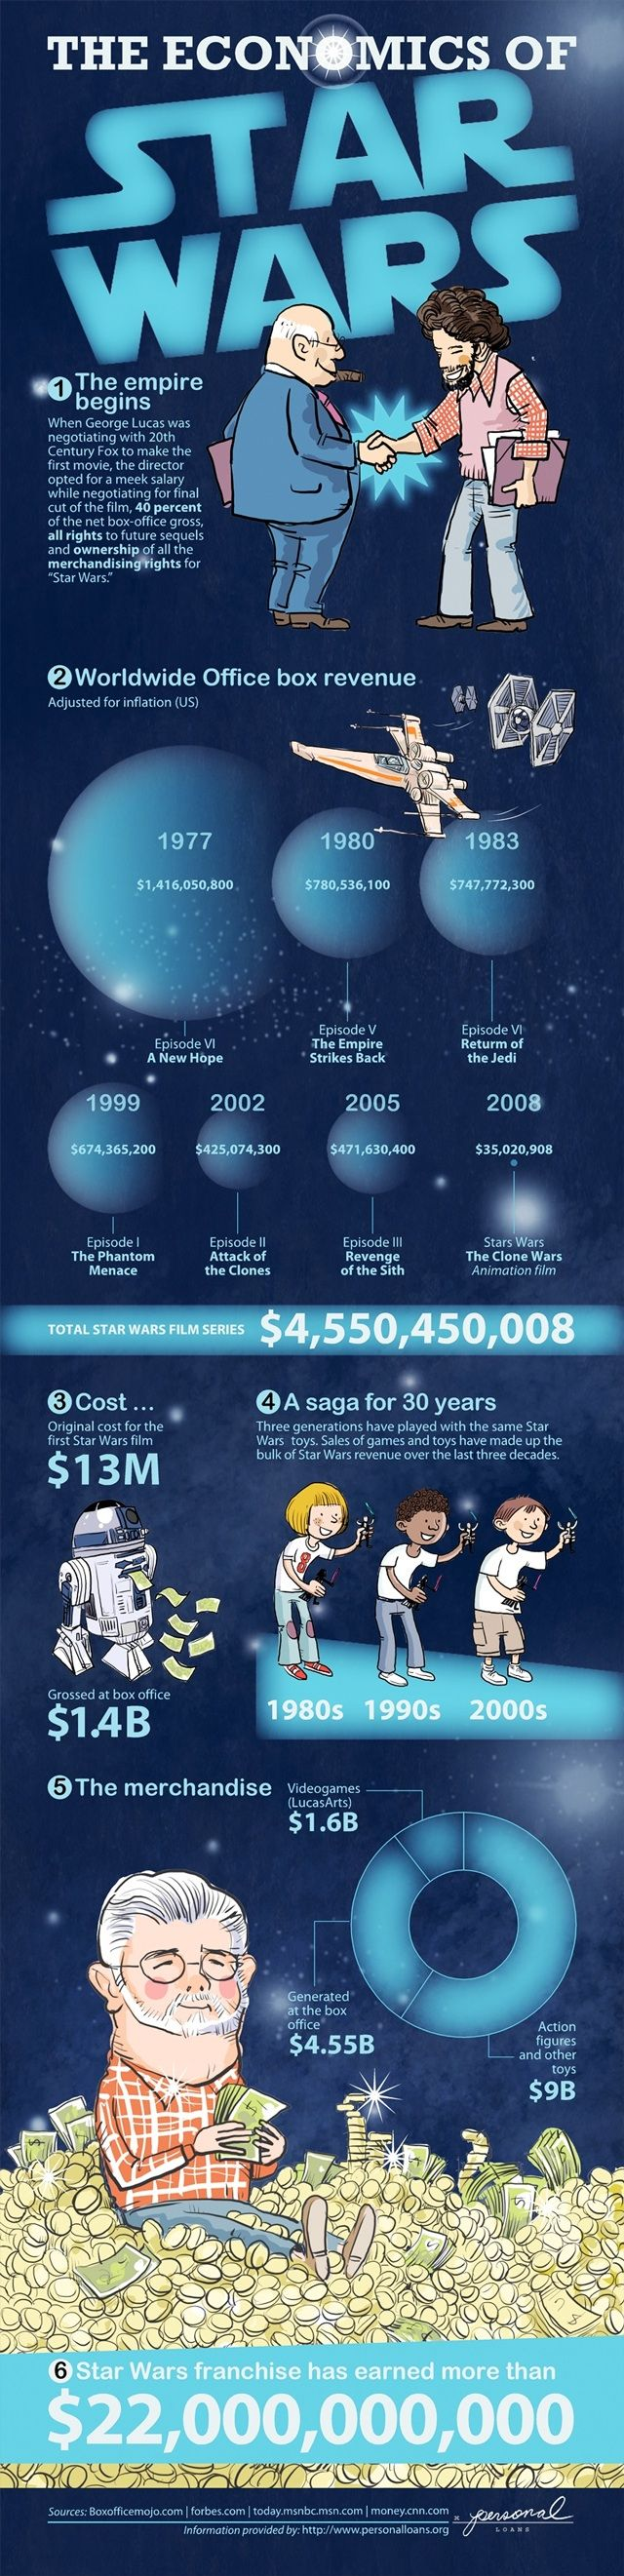 Economics of Star Wars